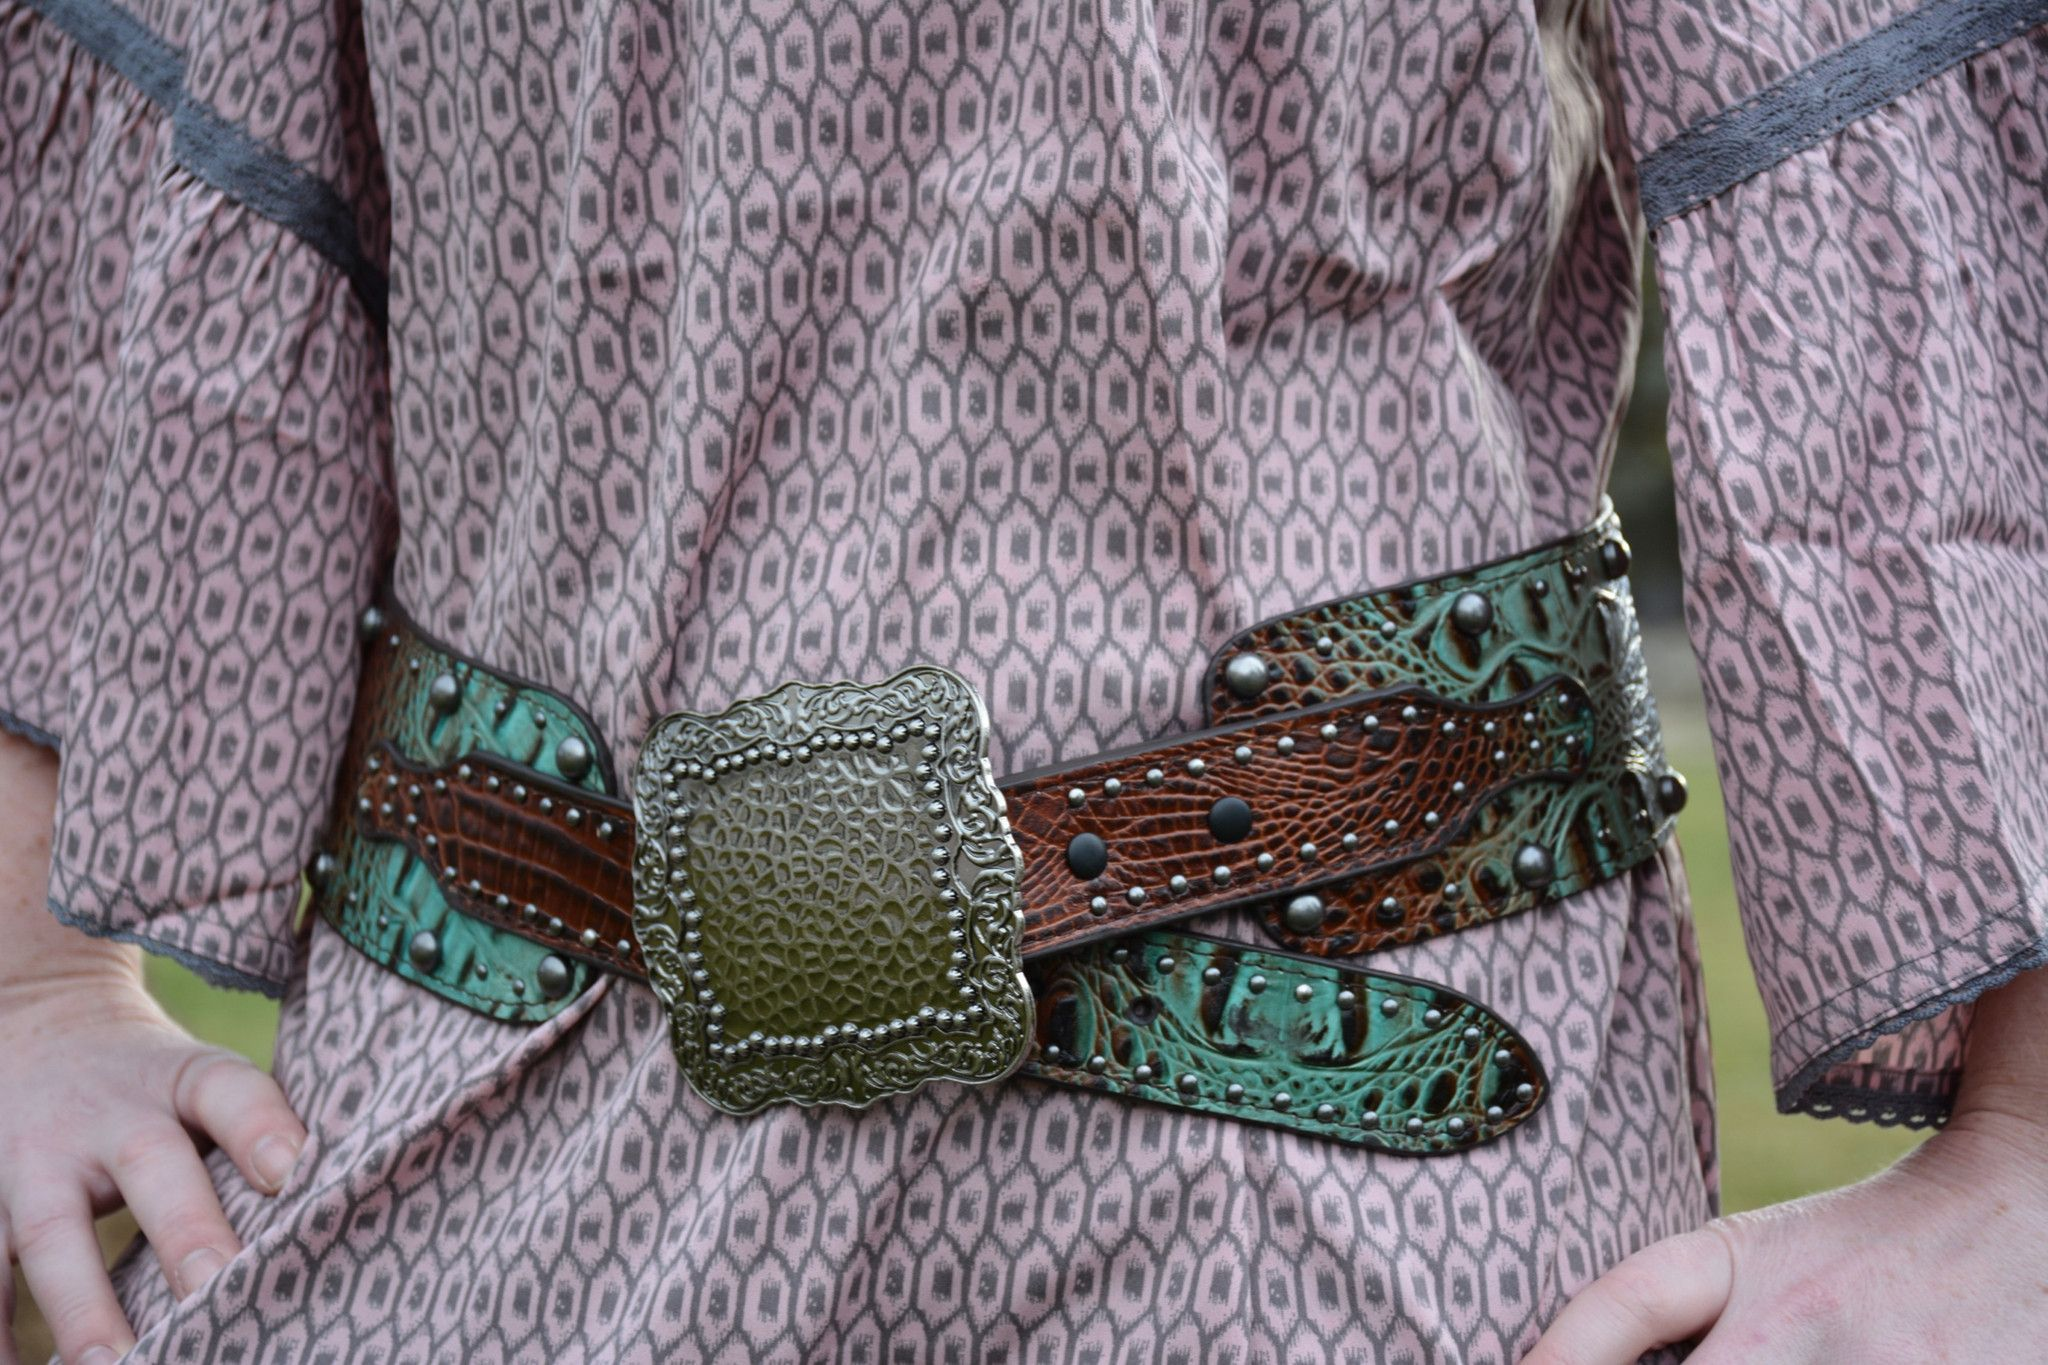 Brown & Turquoise Croc Belt